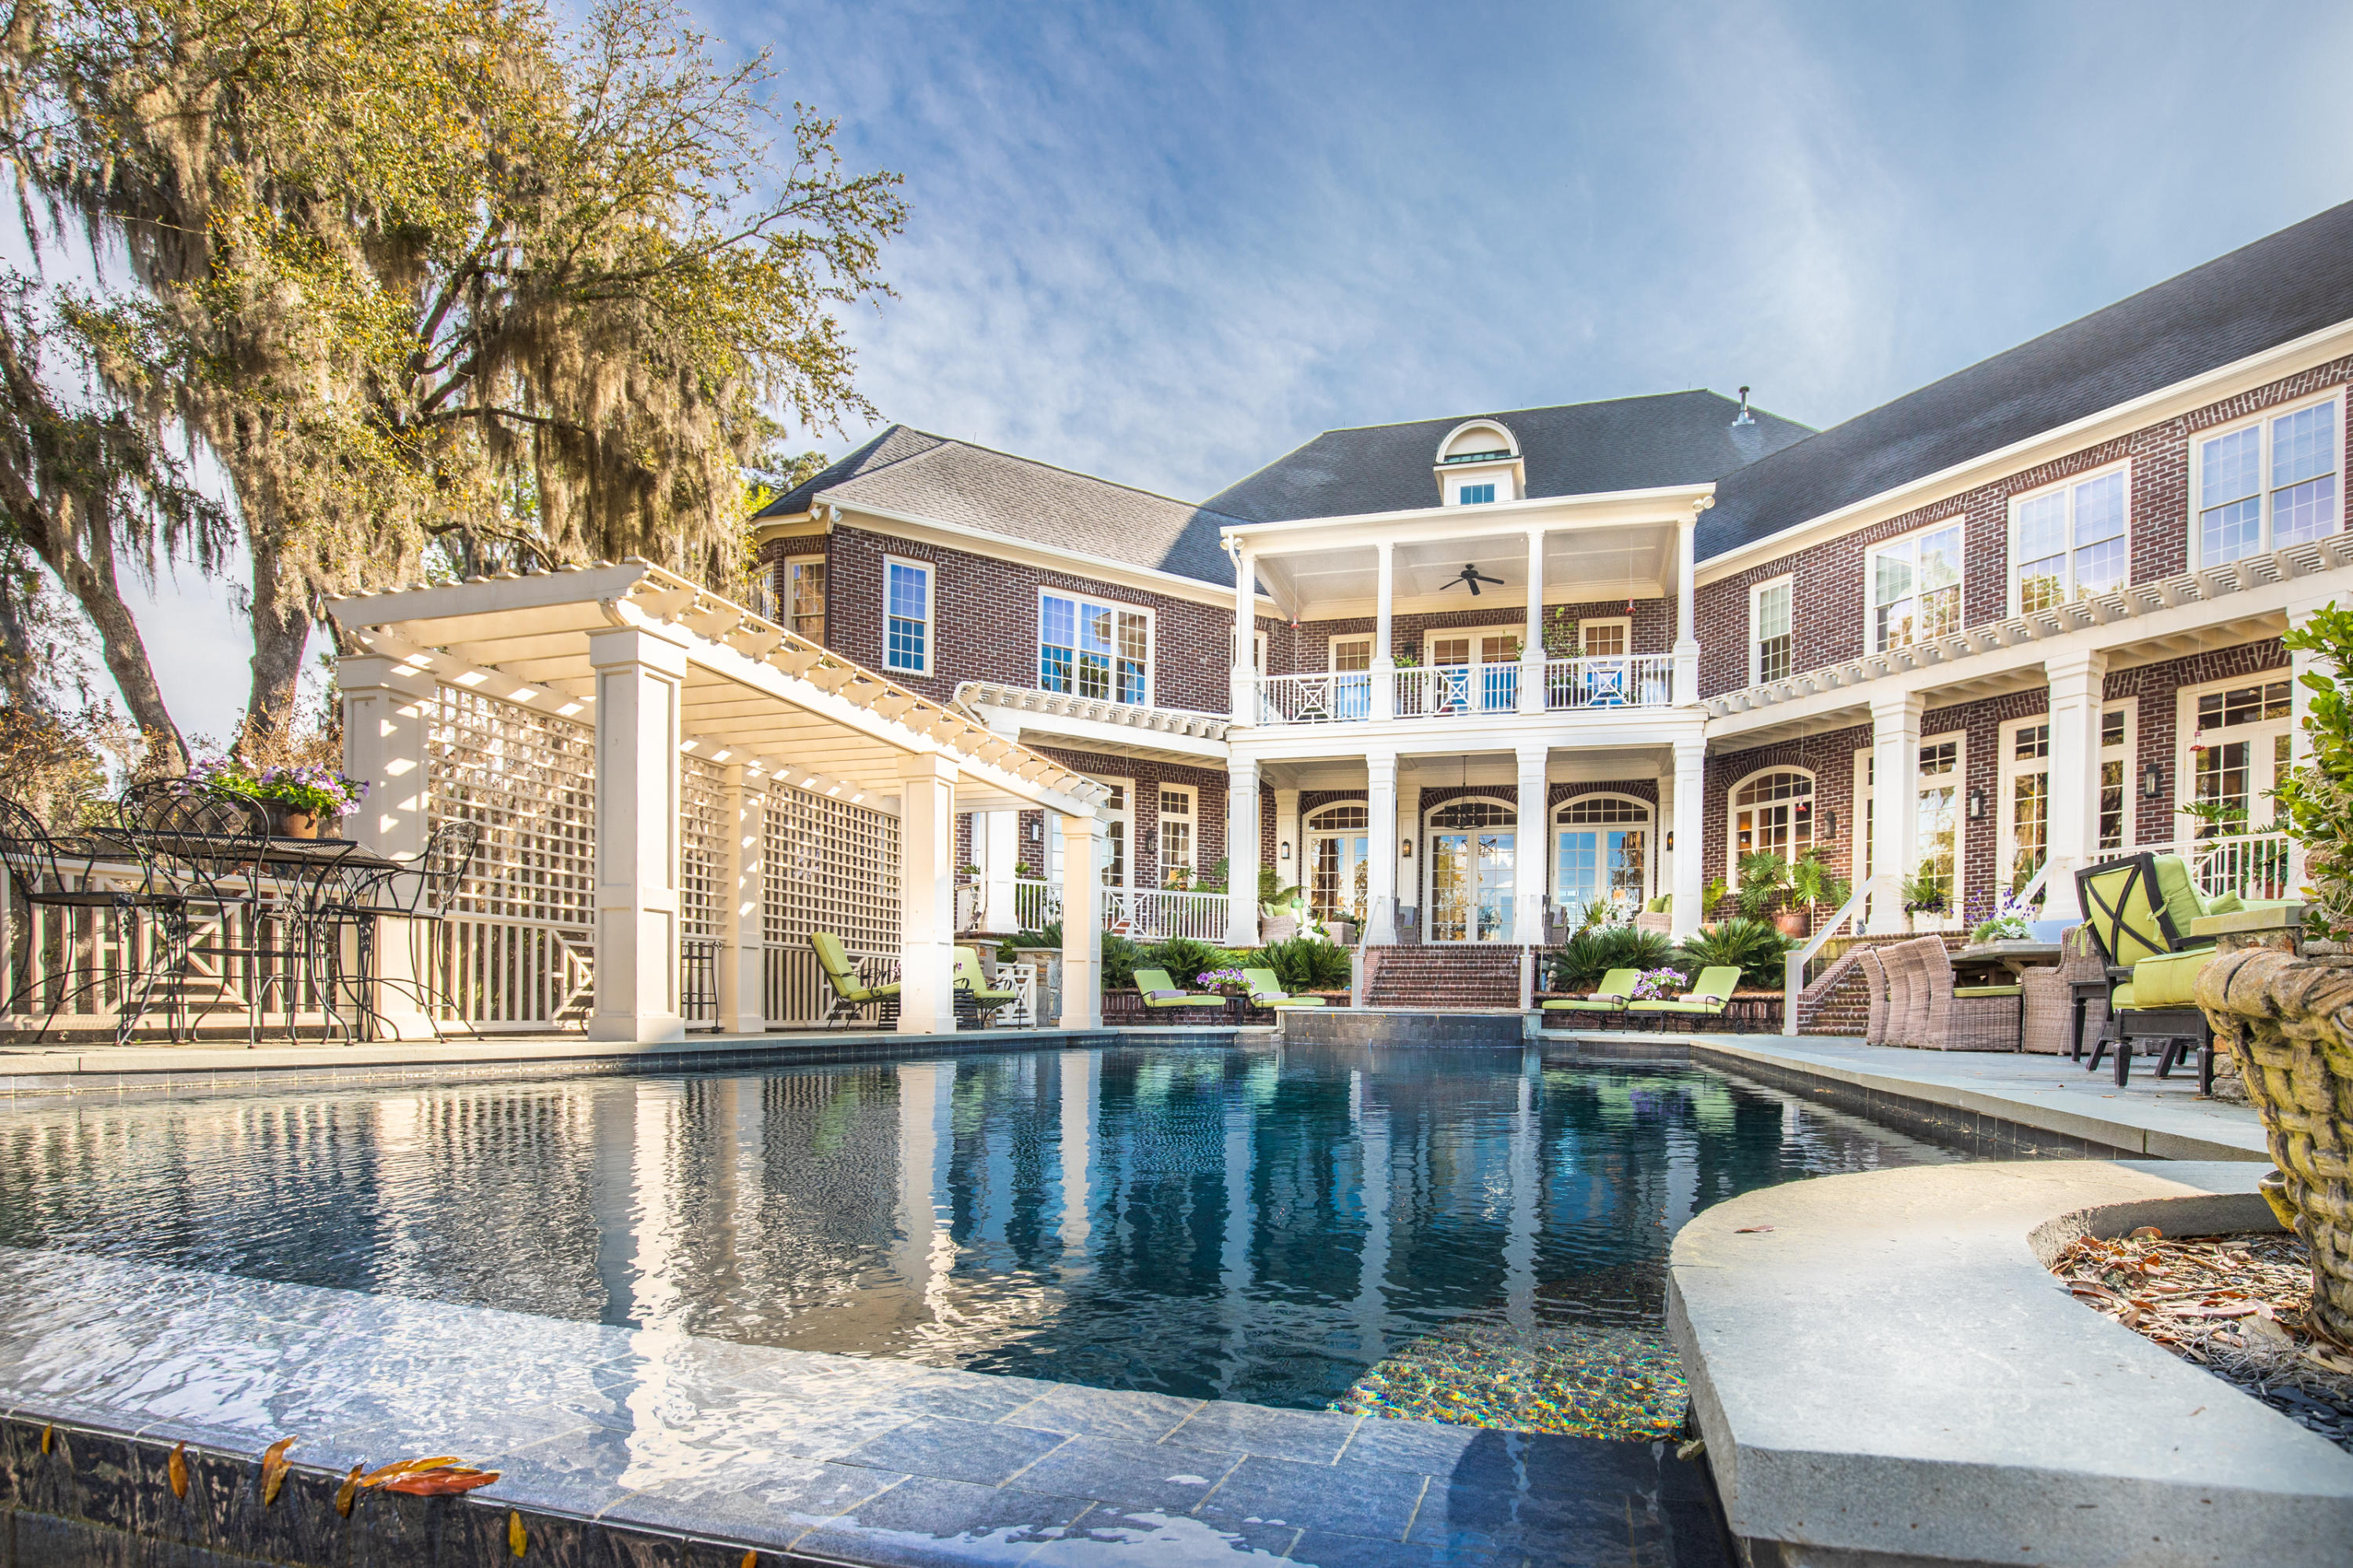 Ravens Bluff Homes For Sale - 5150 Chisolm, Johns Island, SC - 28